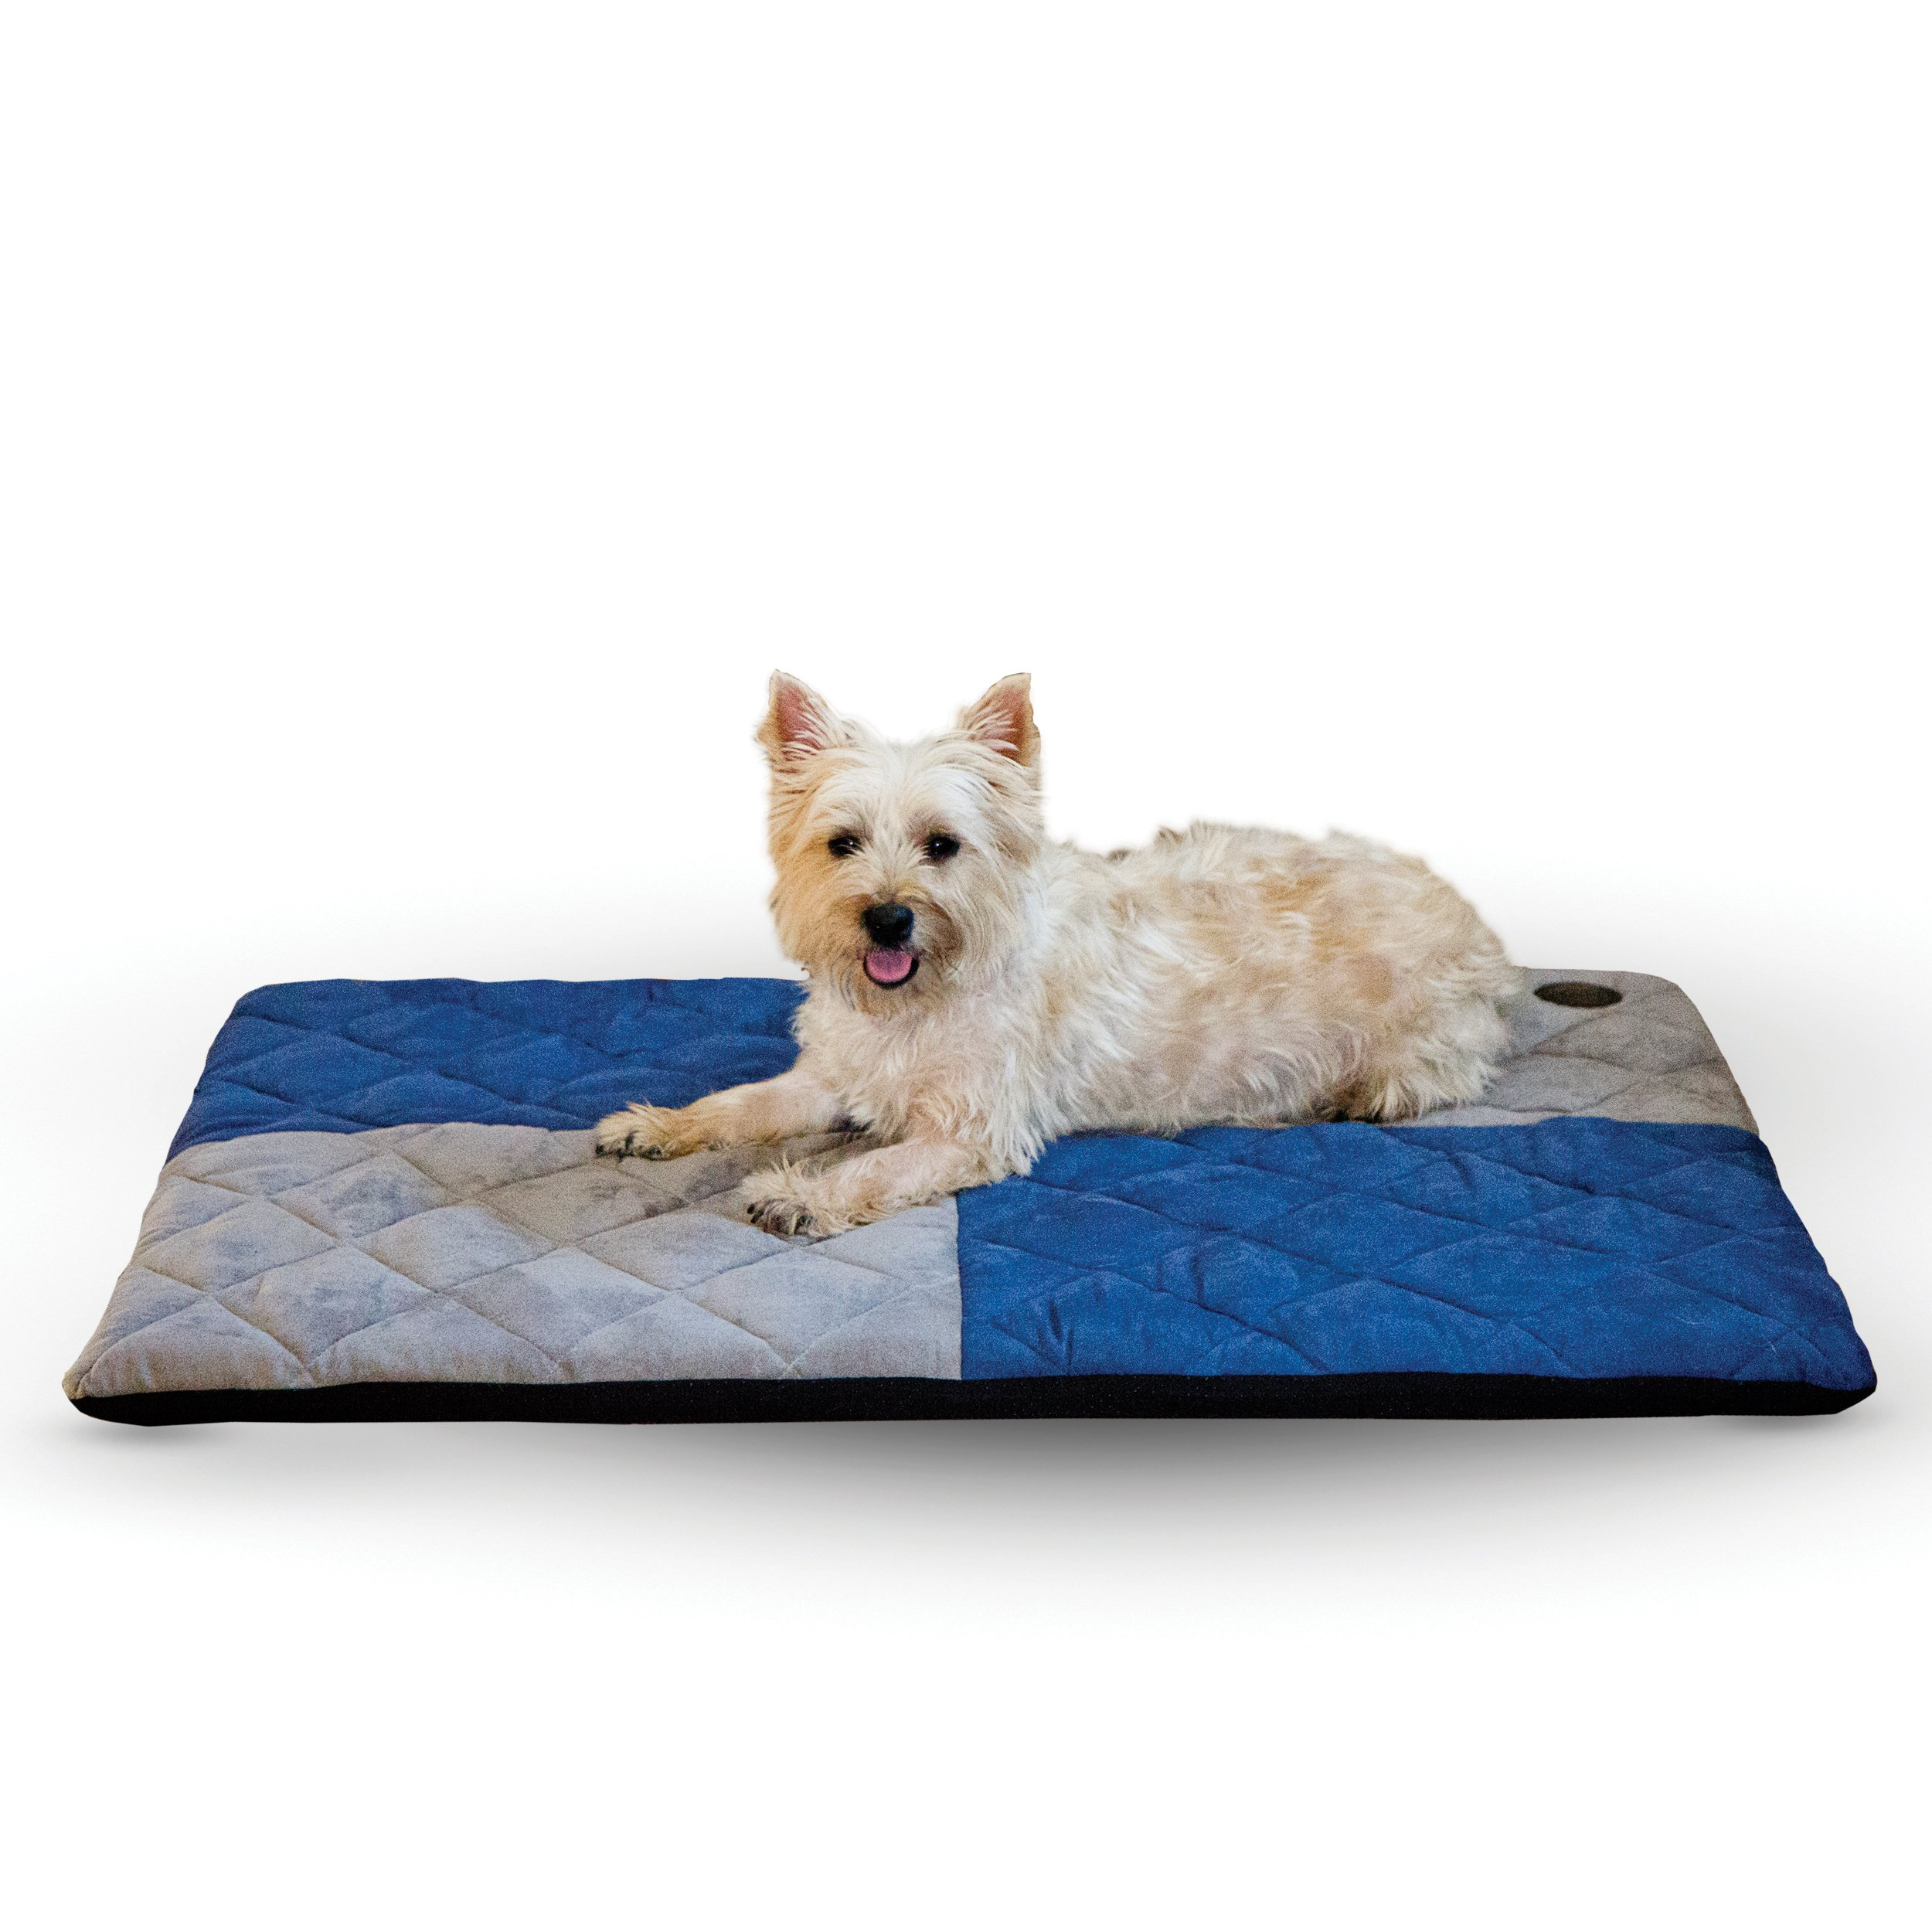 K&H Pet Products Quilted Memory Dream Pet Pad 2-Inch Medium  Blue/Gray 27-Inch by 37-Inch